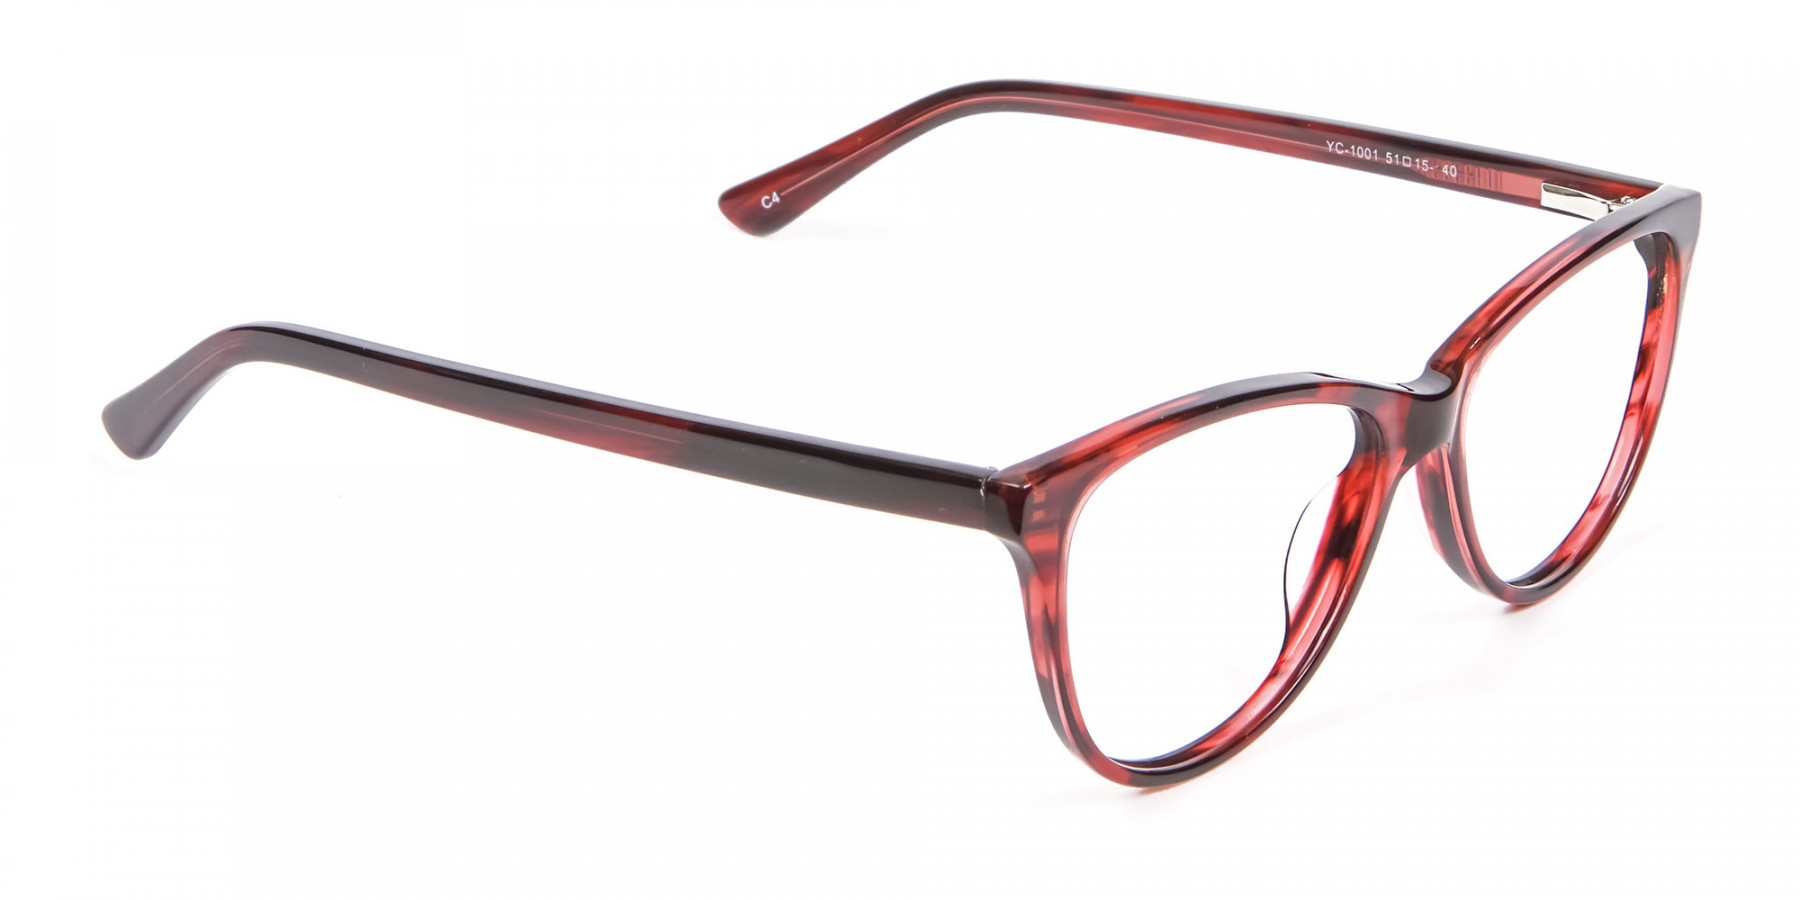 Designer Red Cat Eye Glasses for Women